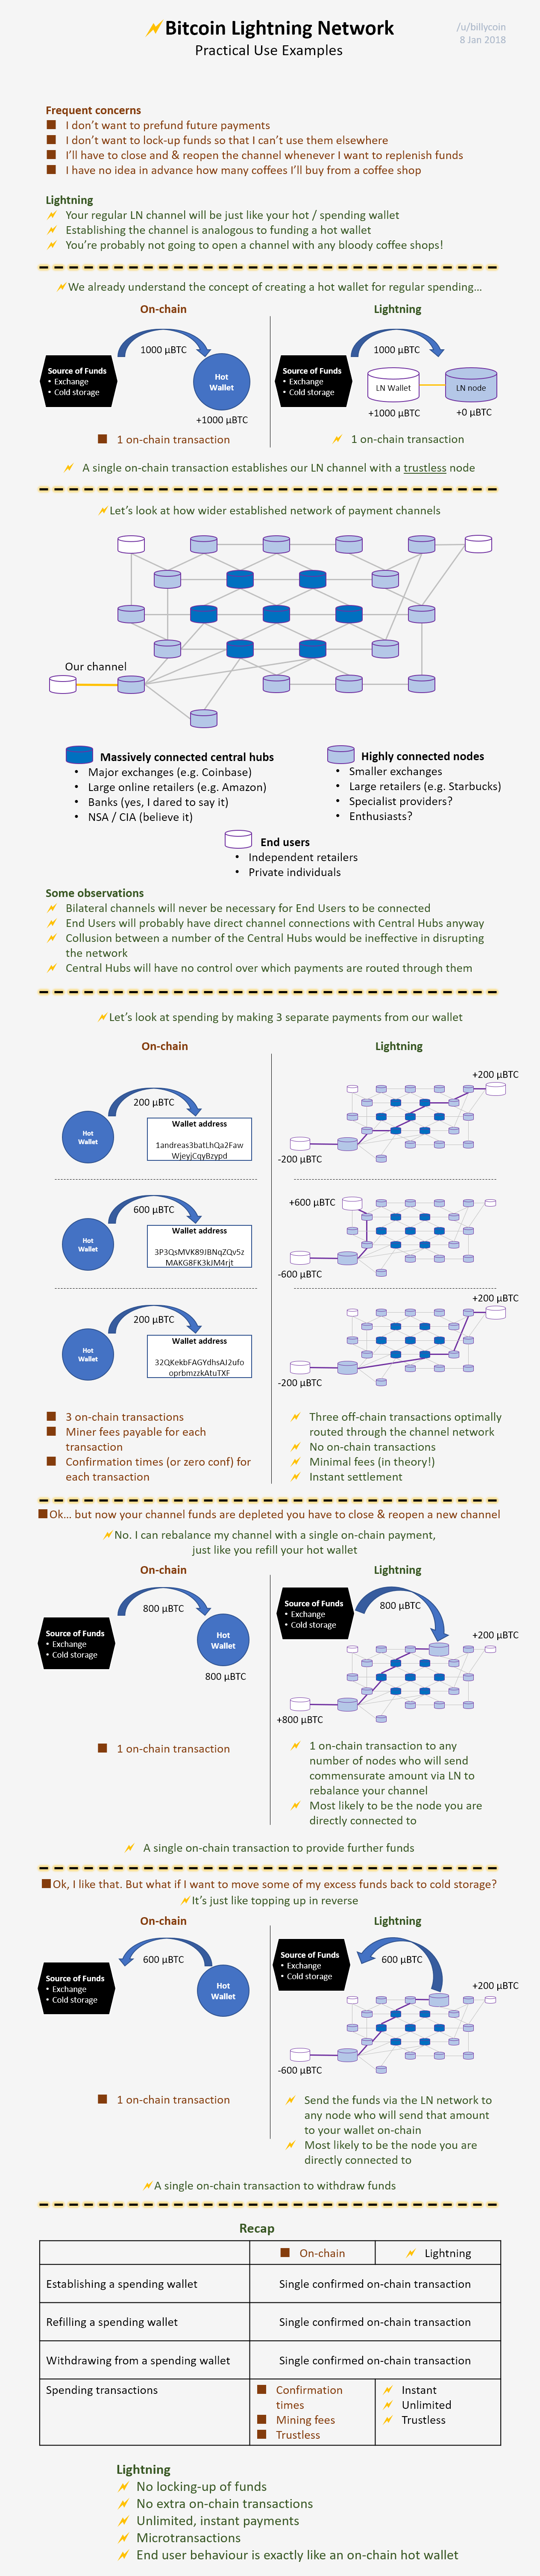 Lightning network uitleg infographic